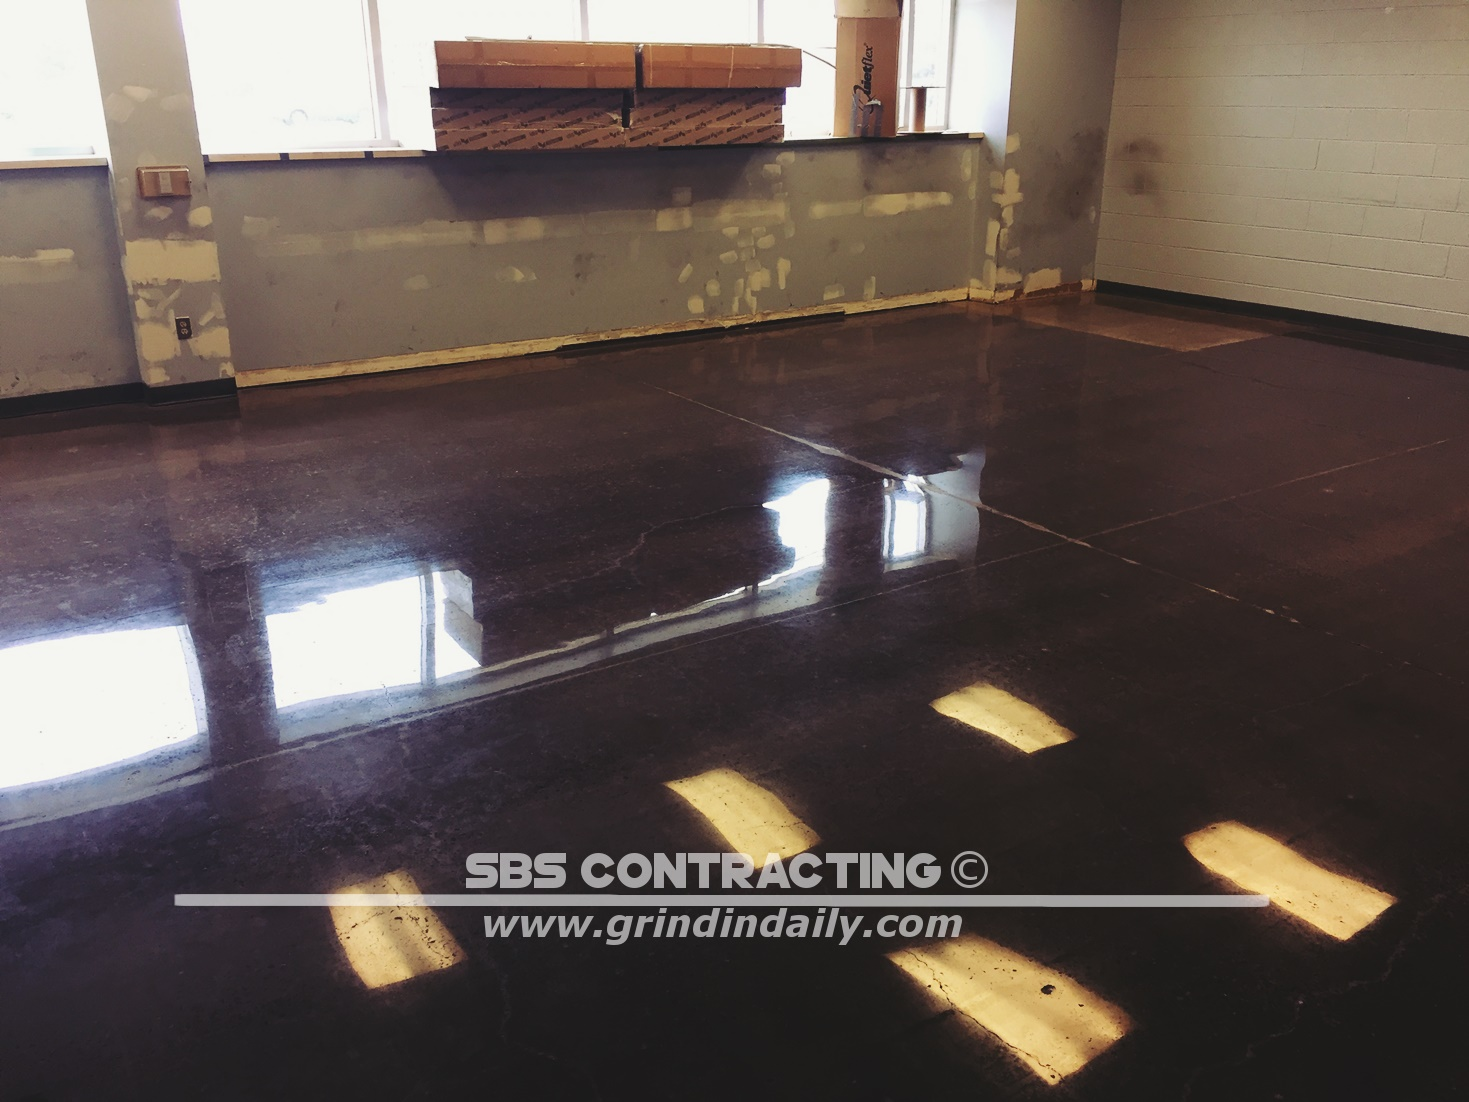 SBS-Contracting-Concrete-Polish-Project-08-01